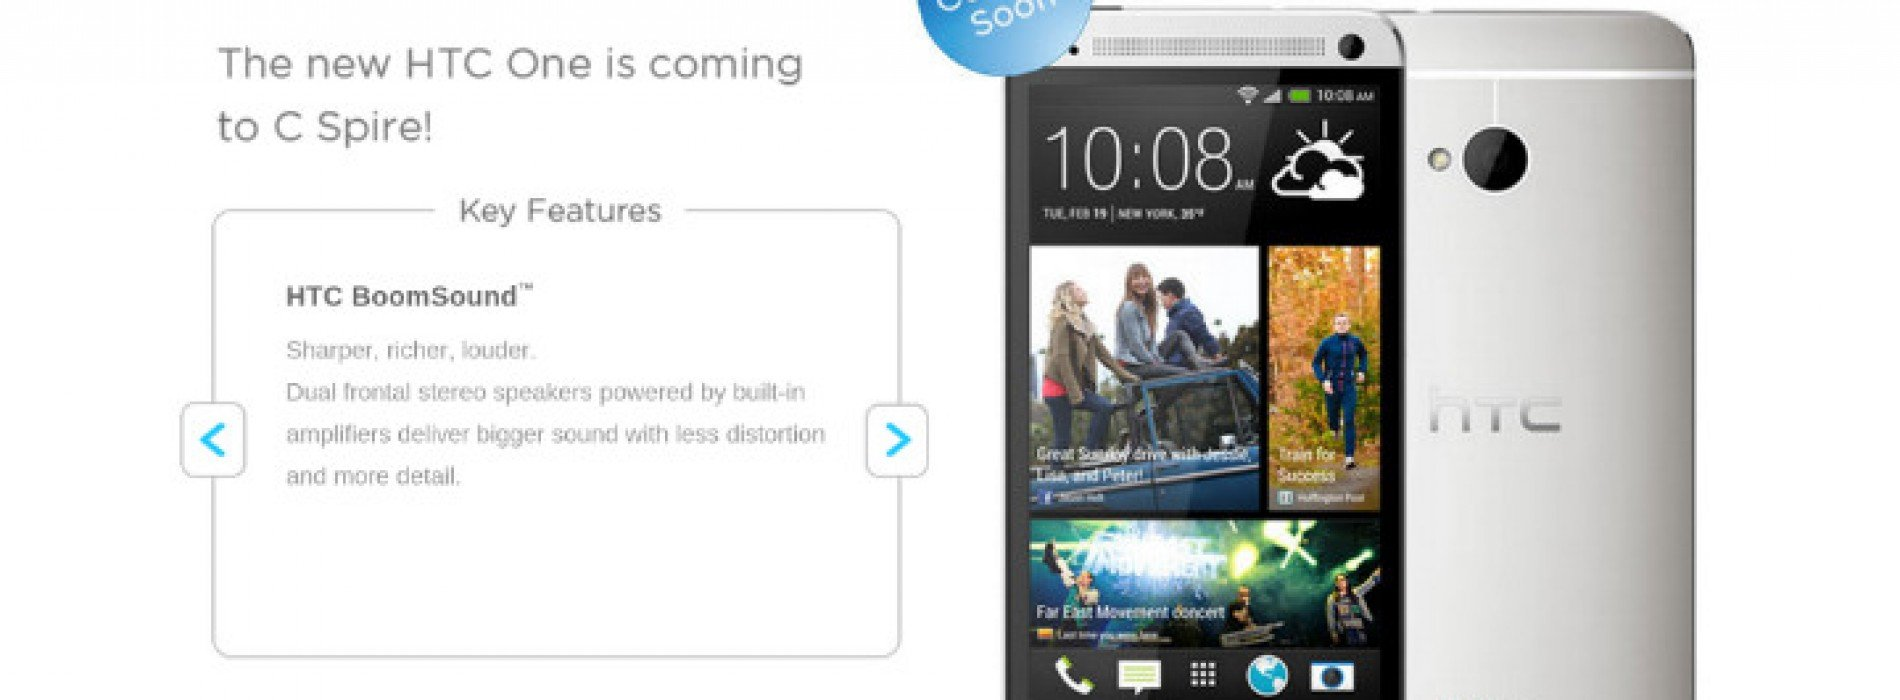 C Spire Wireless confirms plans to carry HTC One this summer